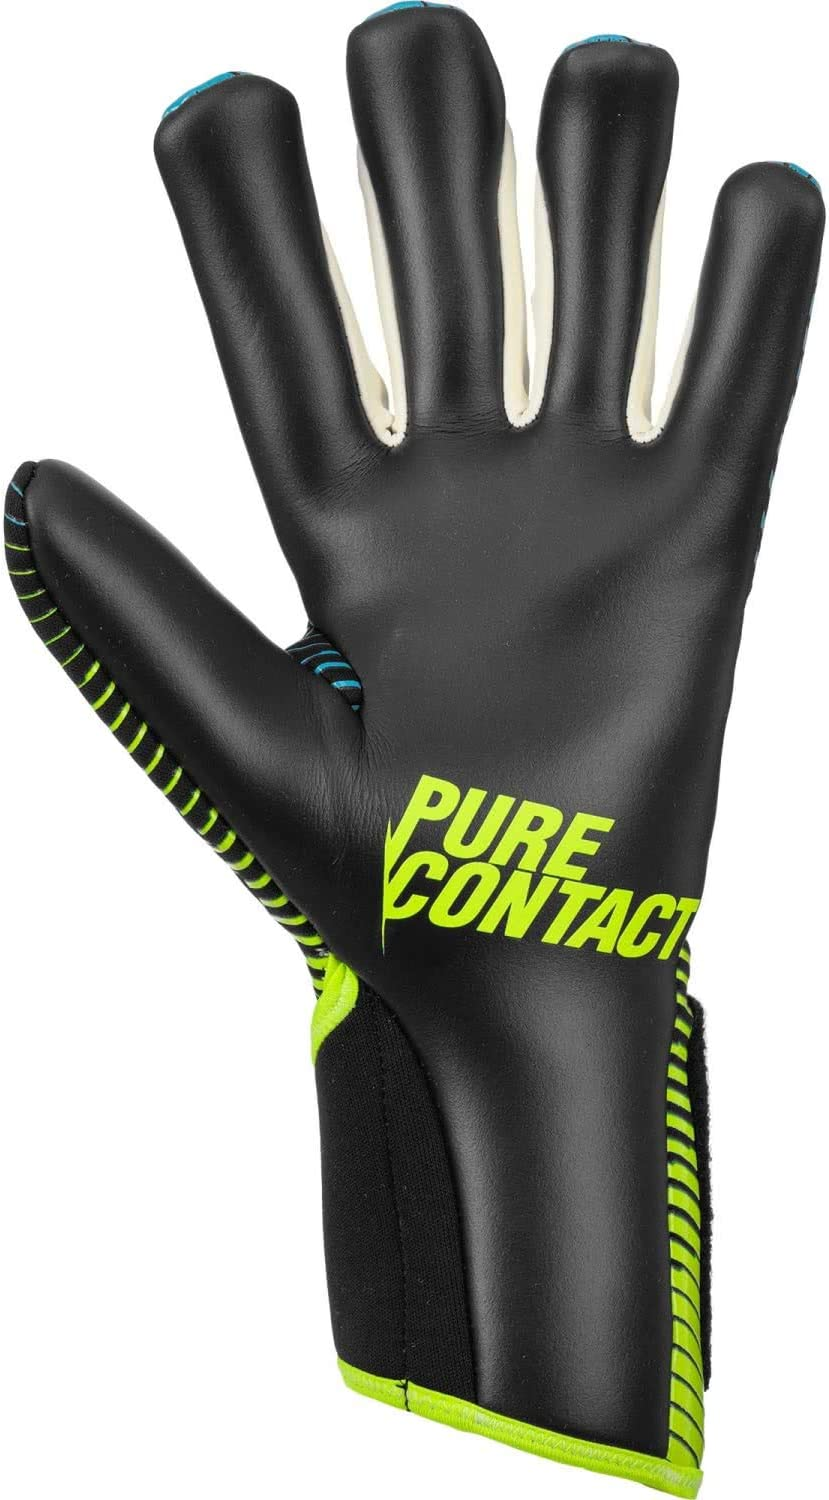 Reusch Pure Contact 3 R3 Goalkeeper Gloves Size 10